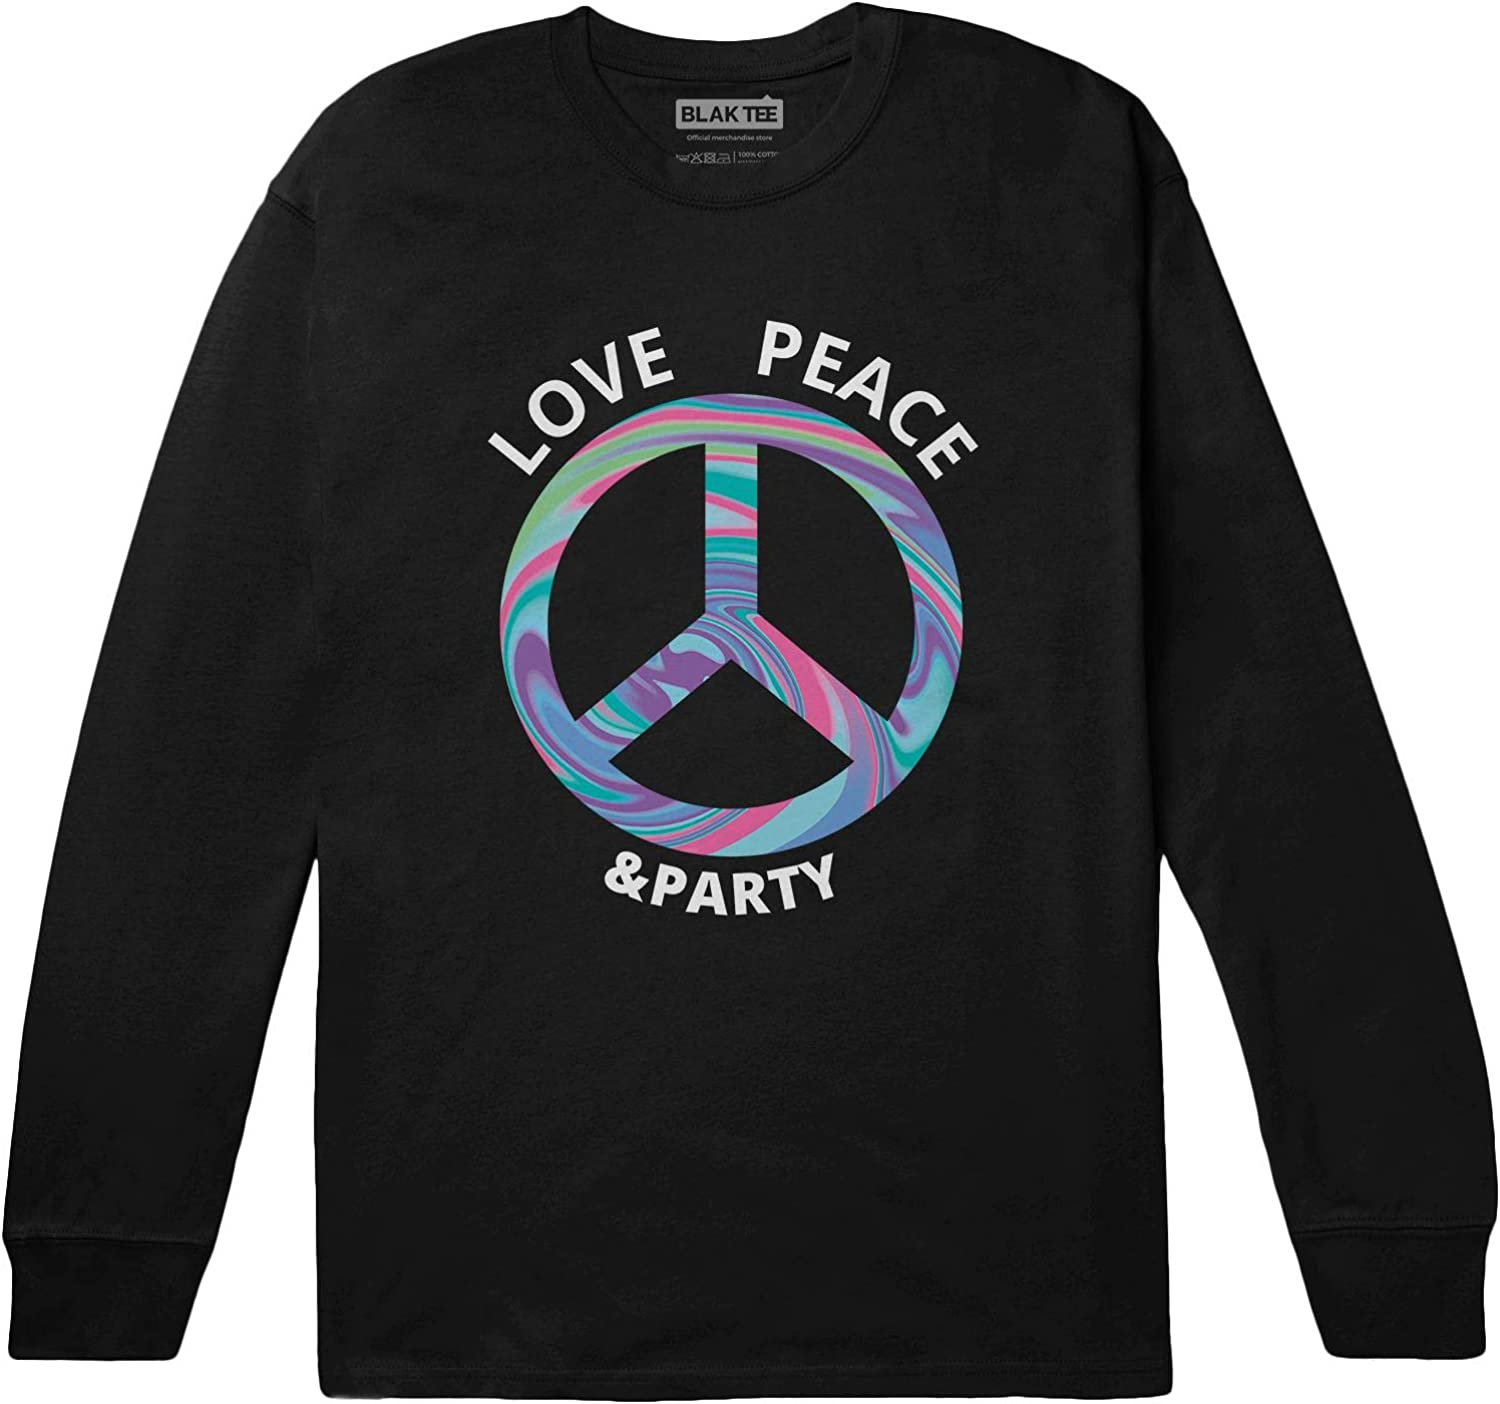 BLAK TEE Uomo Love Peace And Party Psychedelic Peace Sign Maglia a Maniche Lunghe